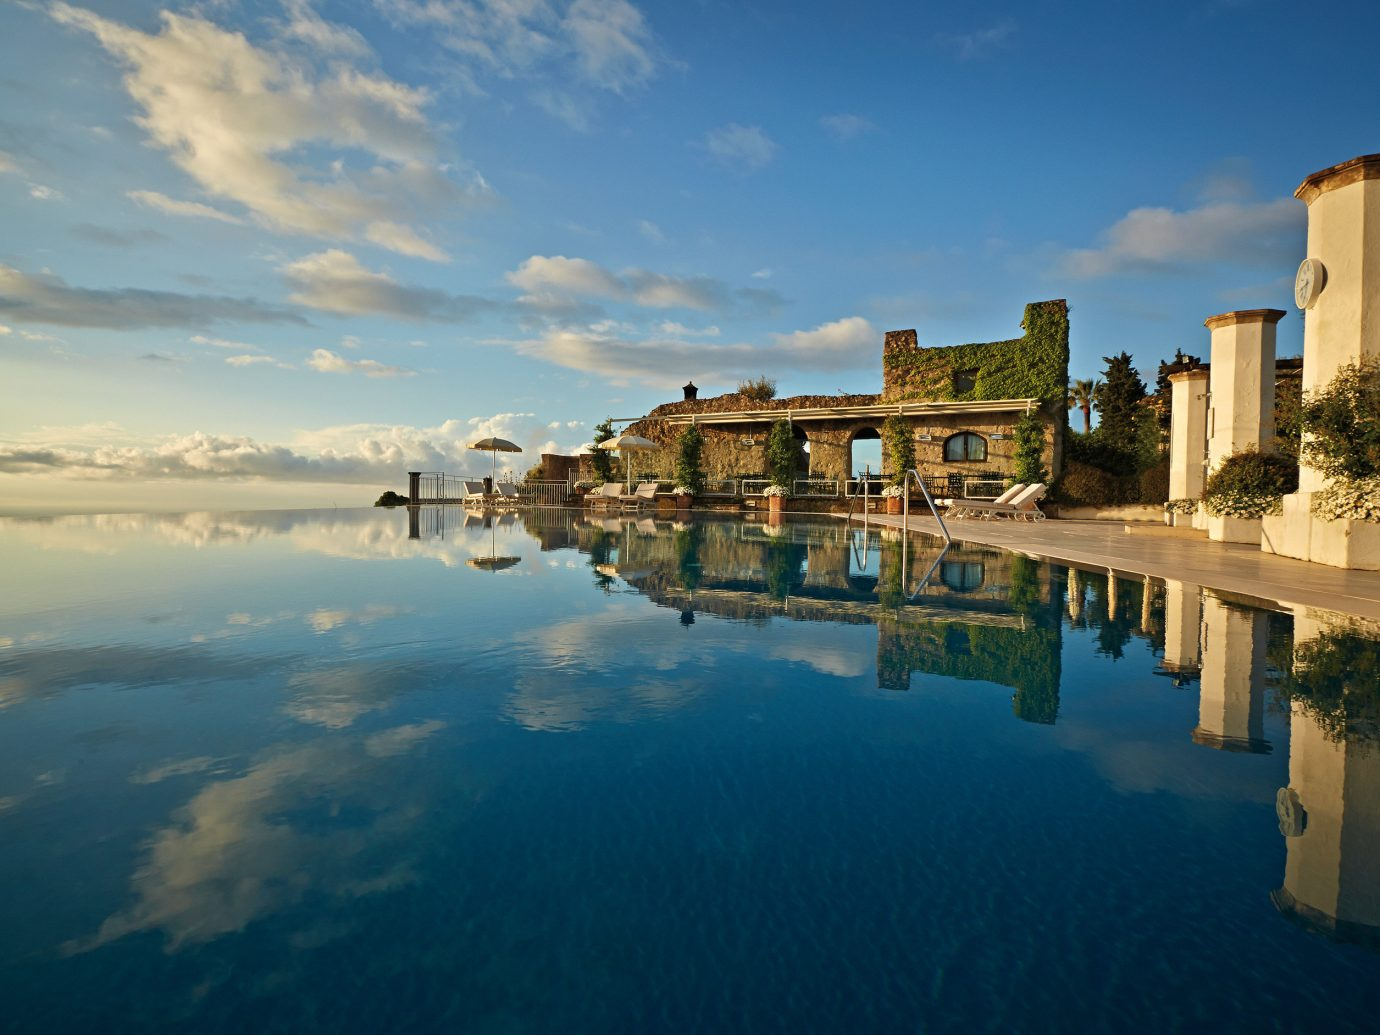 Infinity Pool At The Belmond Hotel Caruso, Ravello, A Luxury Hotel In Amalfi, Italy